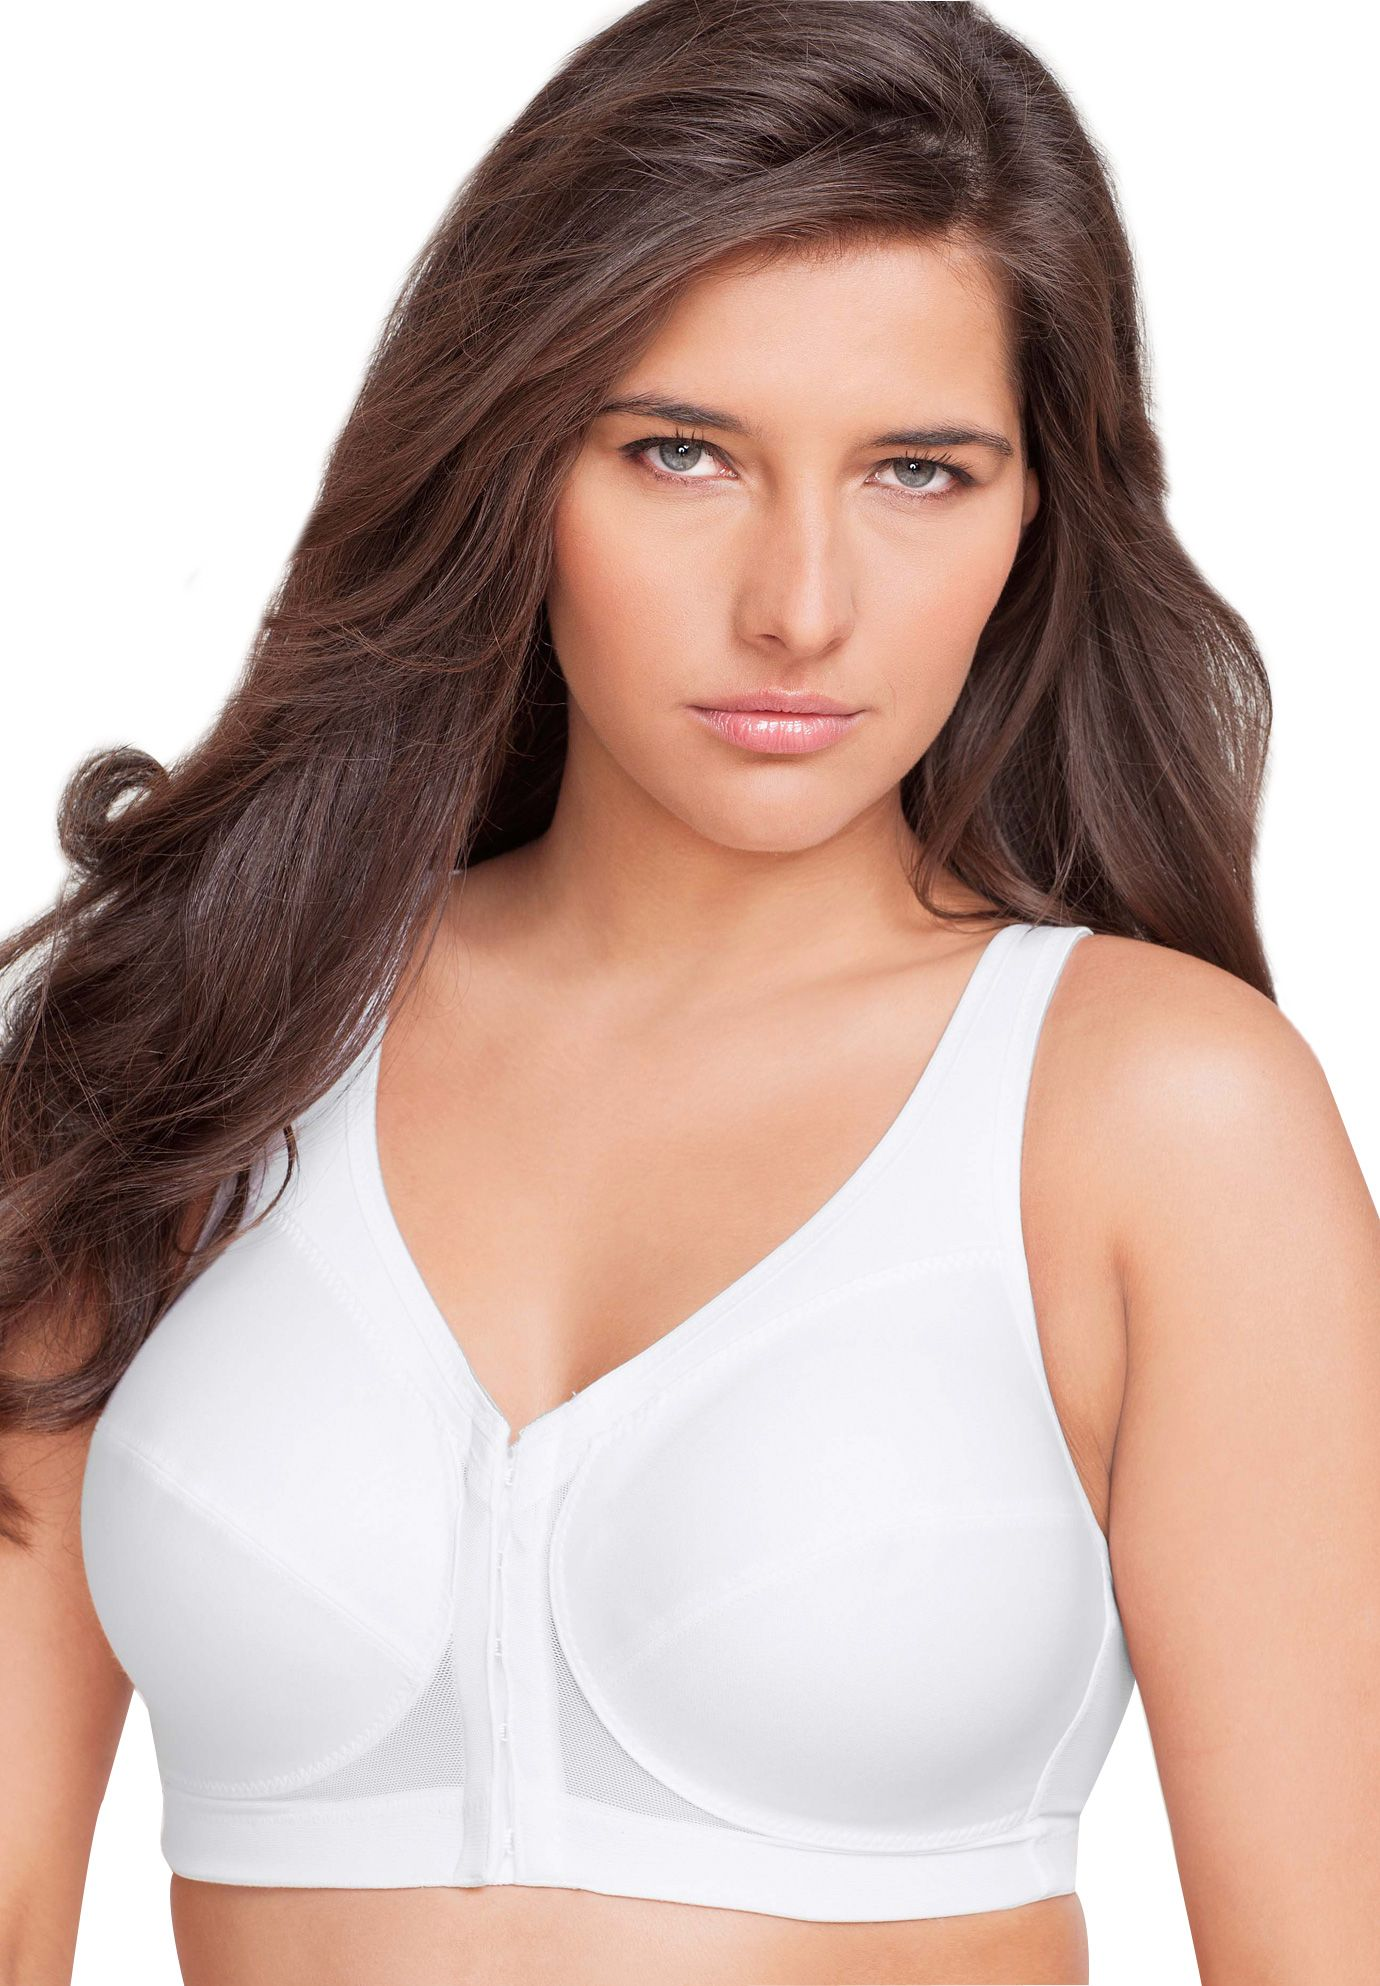 7f3d38748 Too big back band would need shortening tightening Magic Lift Plus® Front  Hook Posture Bra by Glamorise®